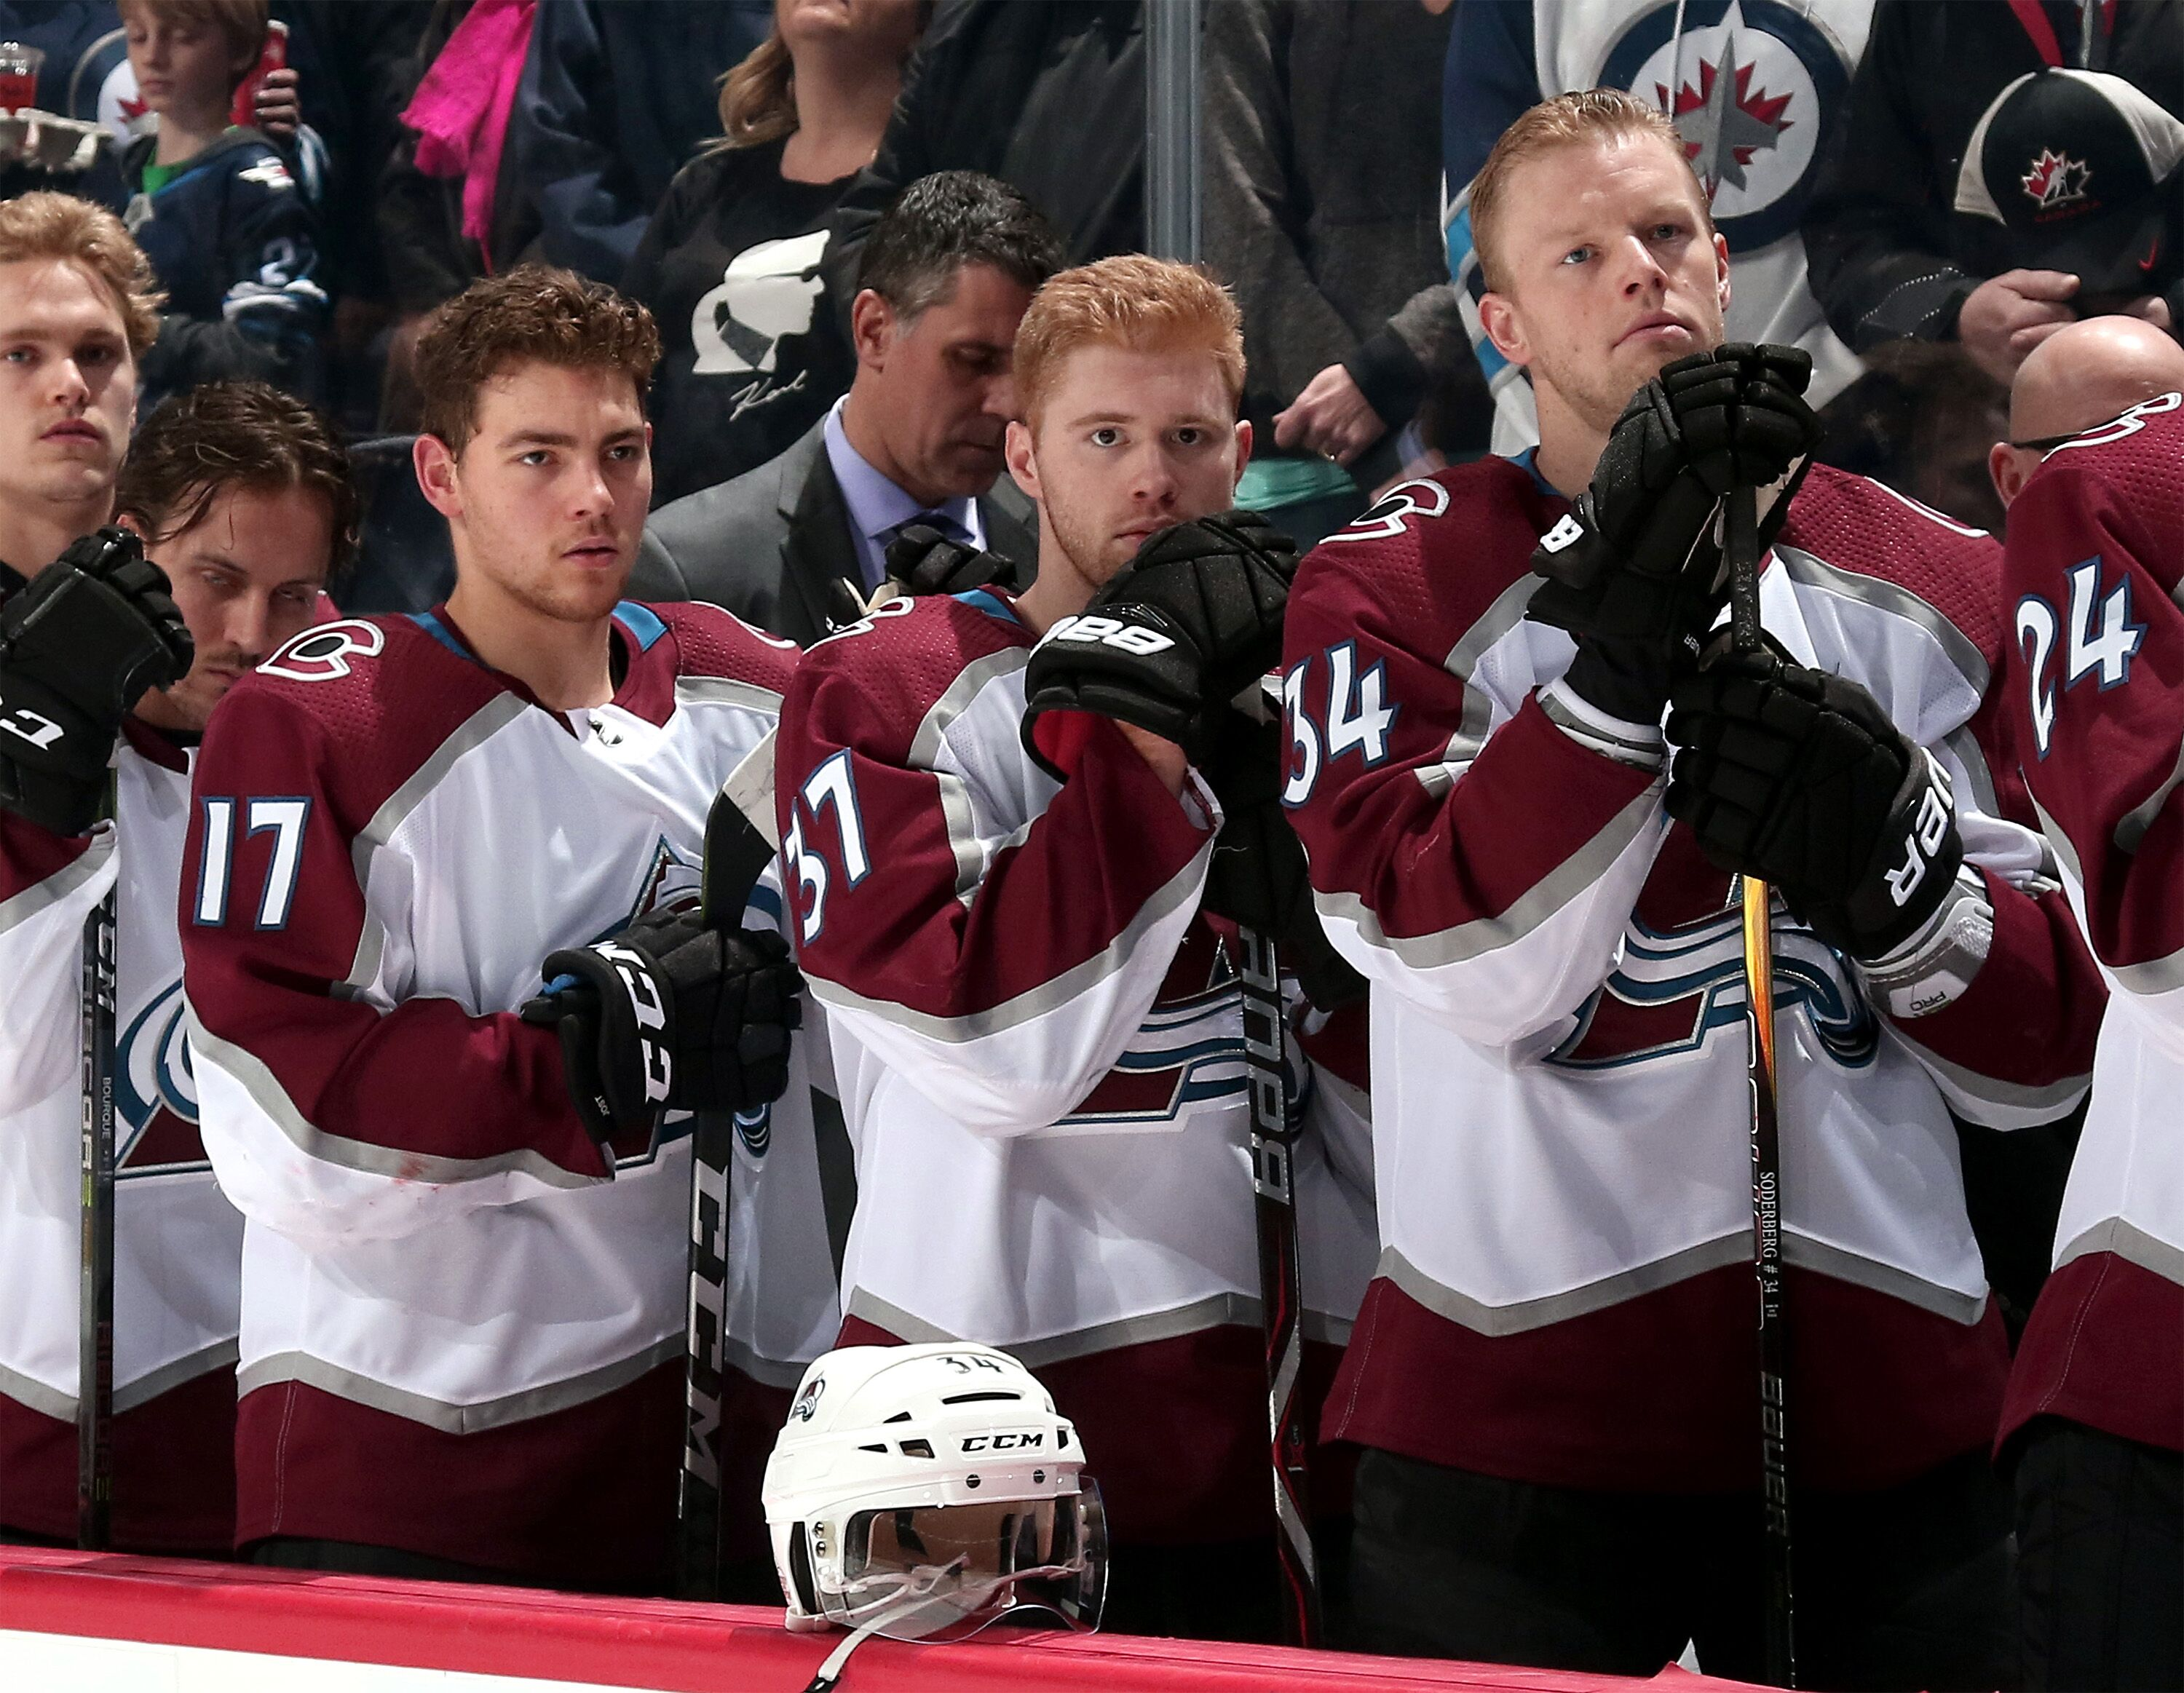 919147312-colorado-avalanche-v-winnipeg-jets.jpg